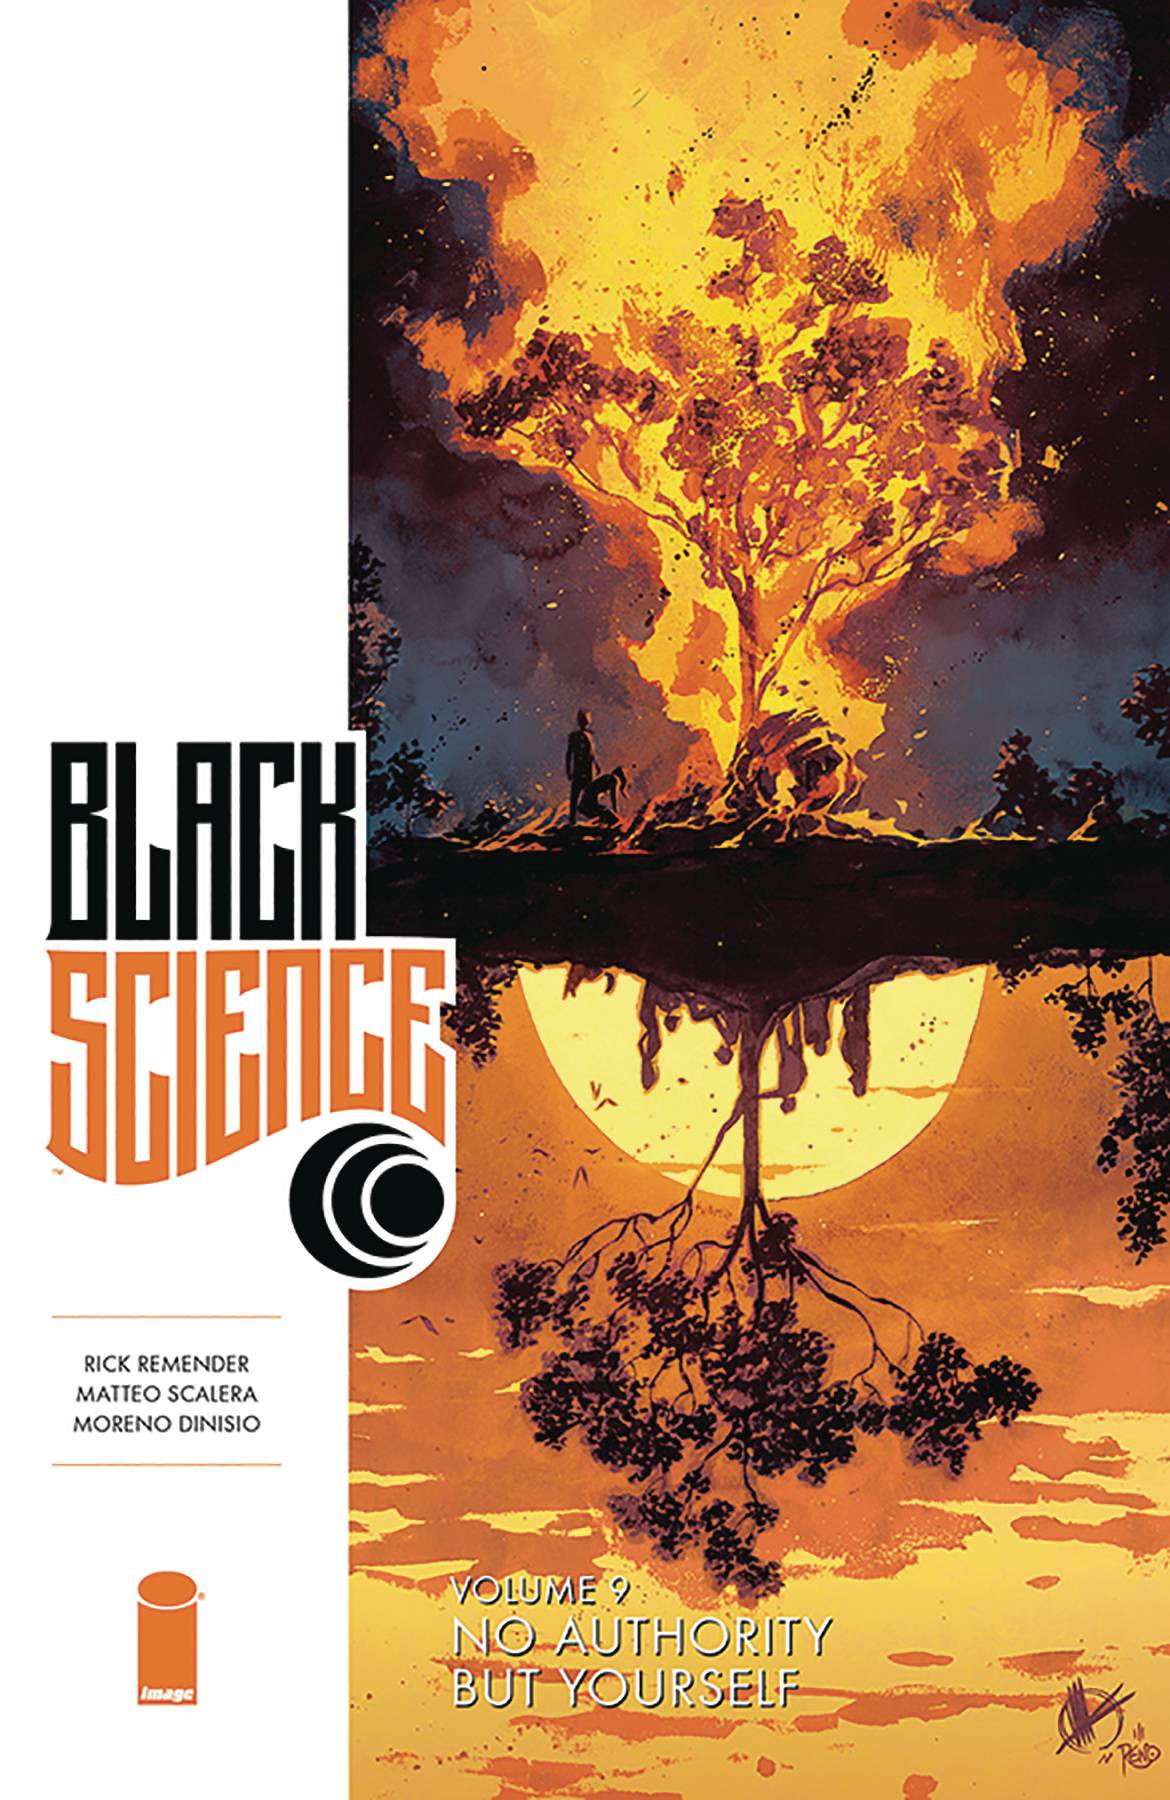 BLACK SCIENCE TP VOL 09 NO AUTHORITY BUT YOURSELF (JUL190099